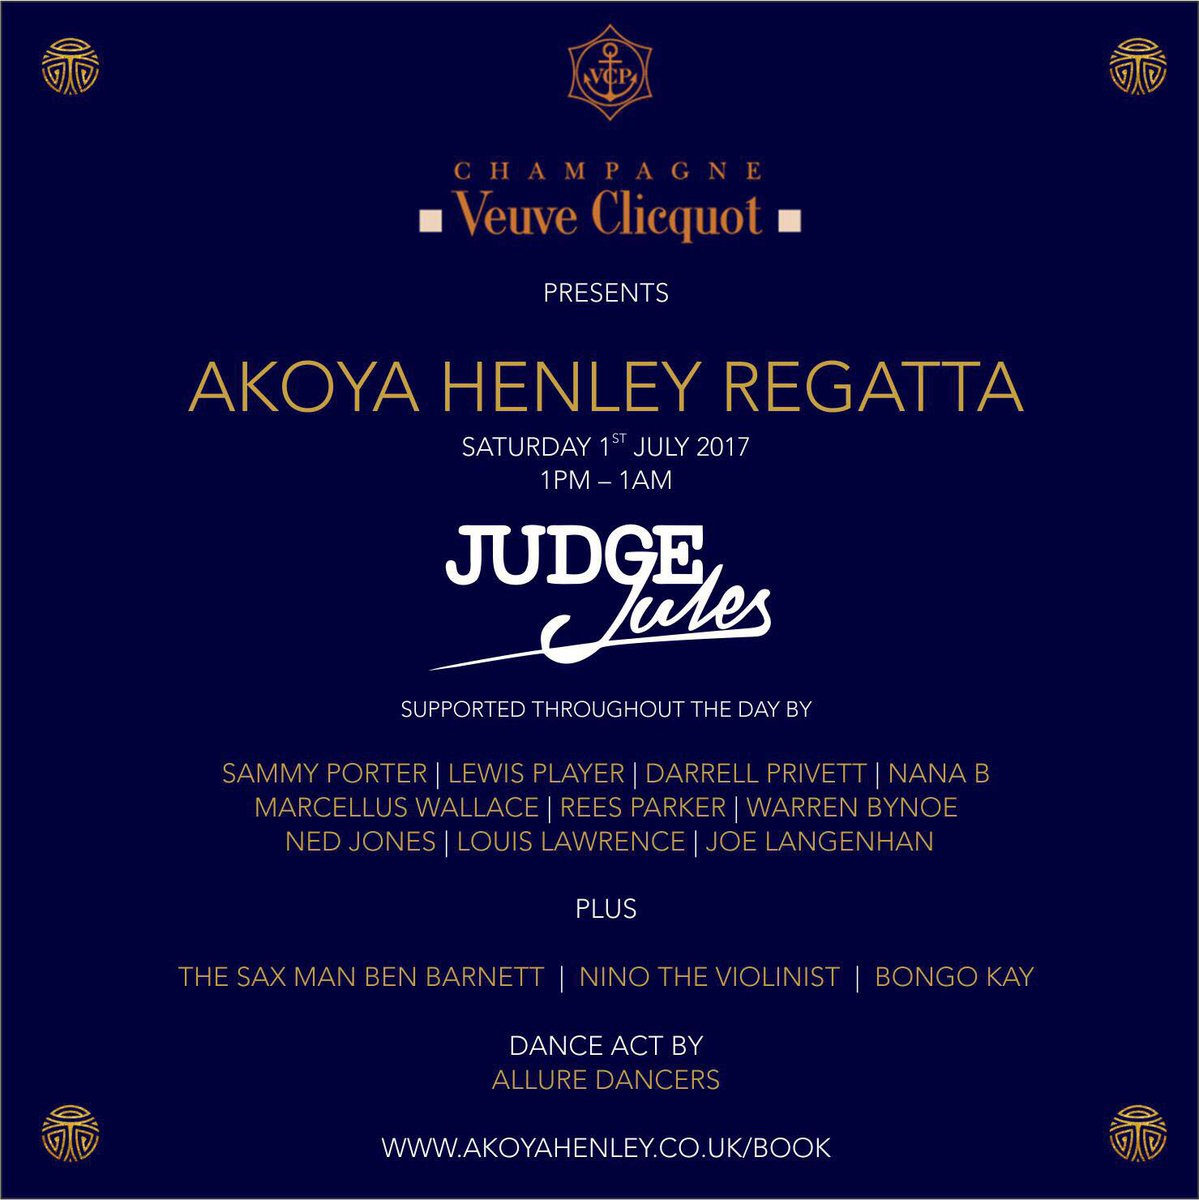 Not too long now @akoyagroupuk been looking forward to this